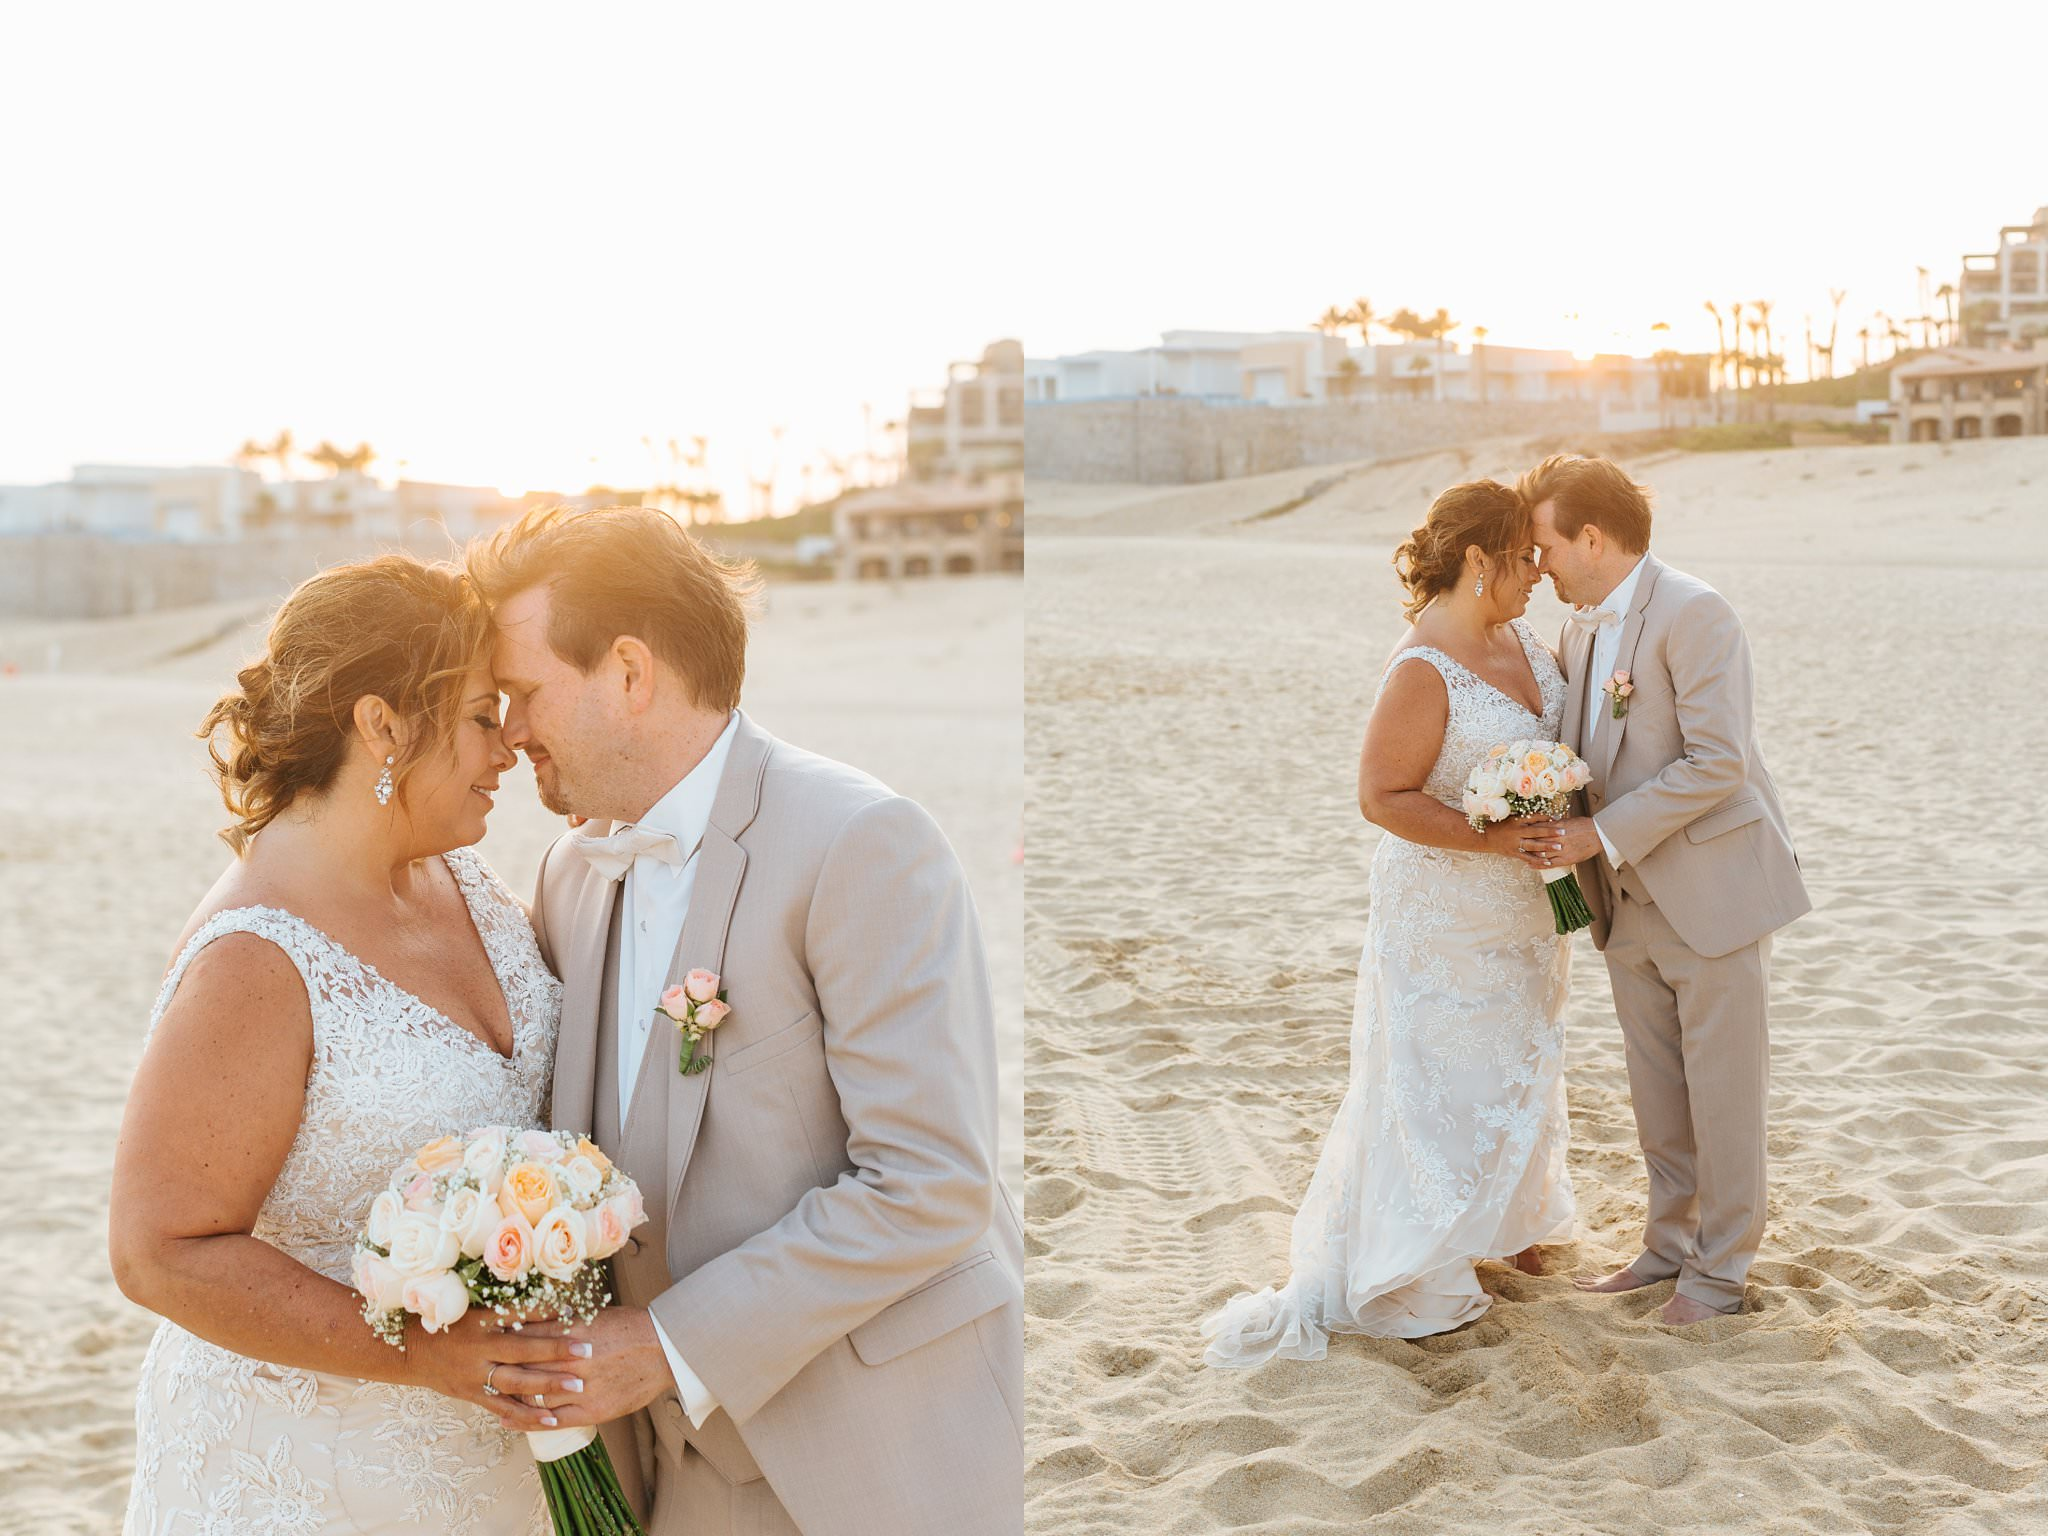 Sunset bride and groom photos in Mexico - Cabo Destination Photographer - https://brittneyhannonphotography.com